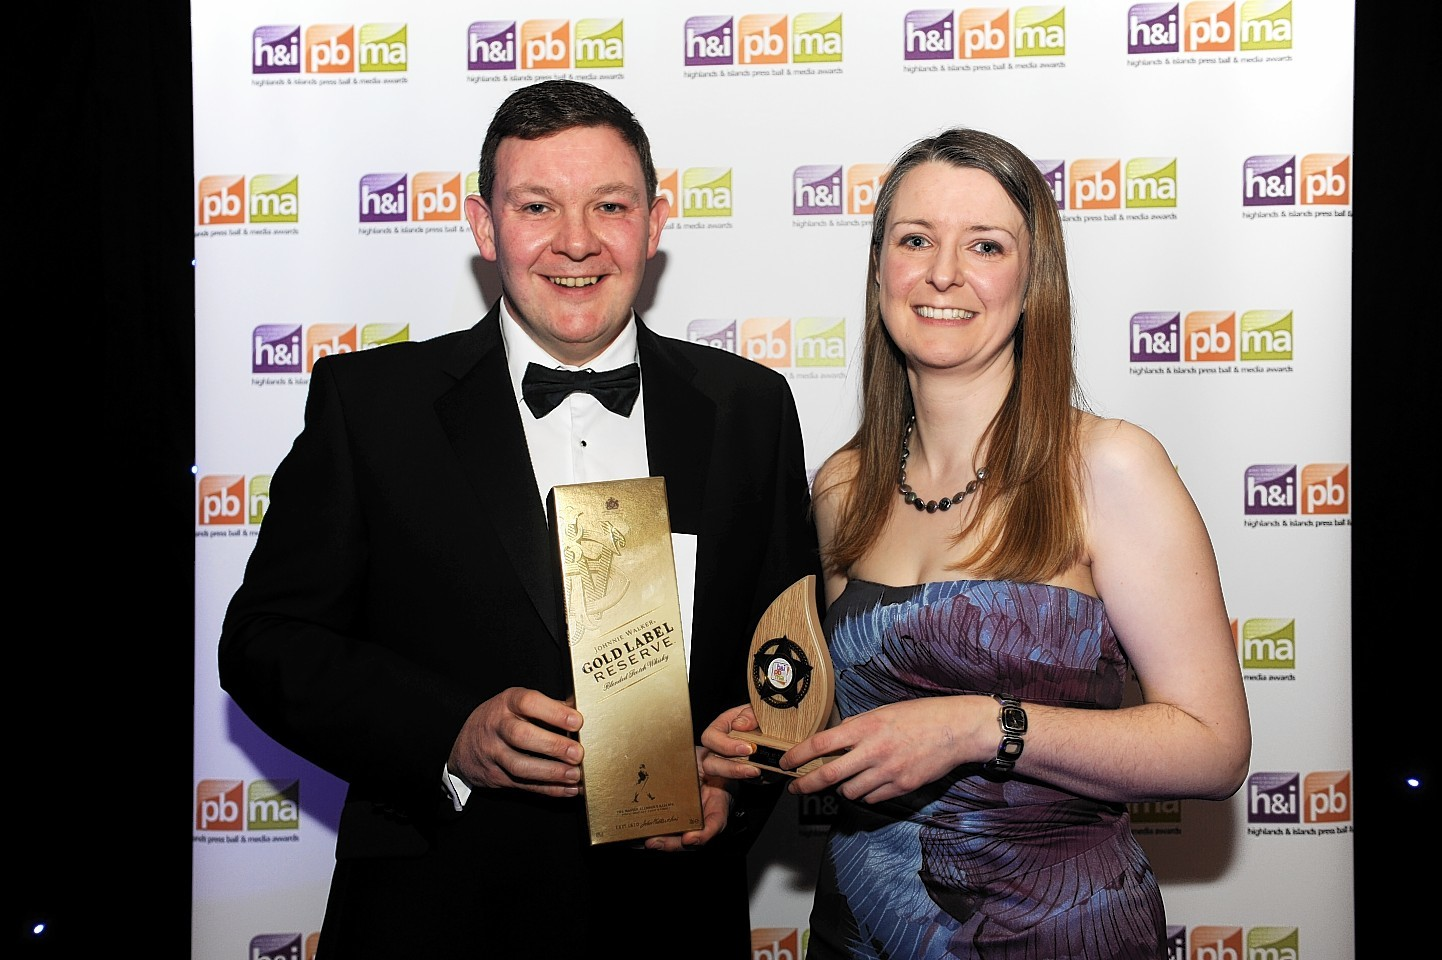 Jane Candlish won the story of the year at the awards for her coverage of controversial armed police in the Highlands